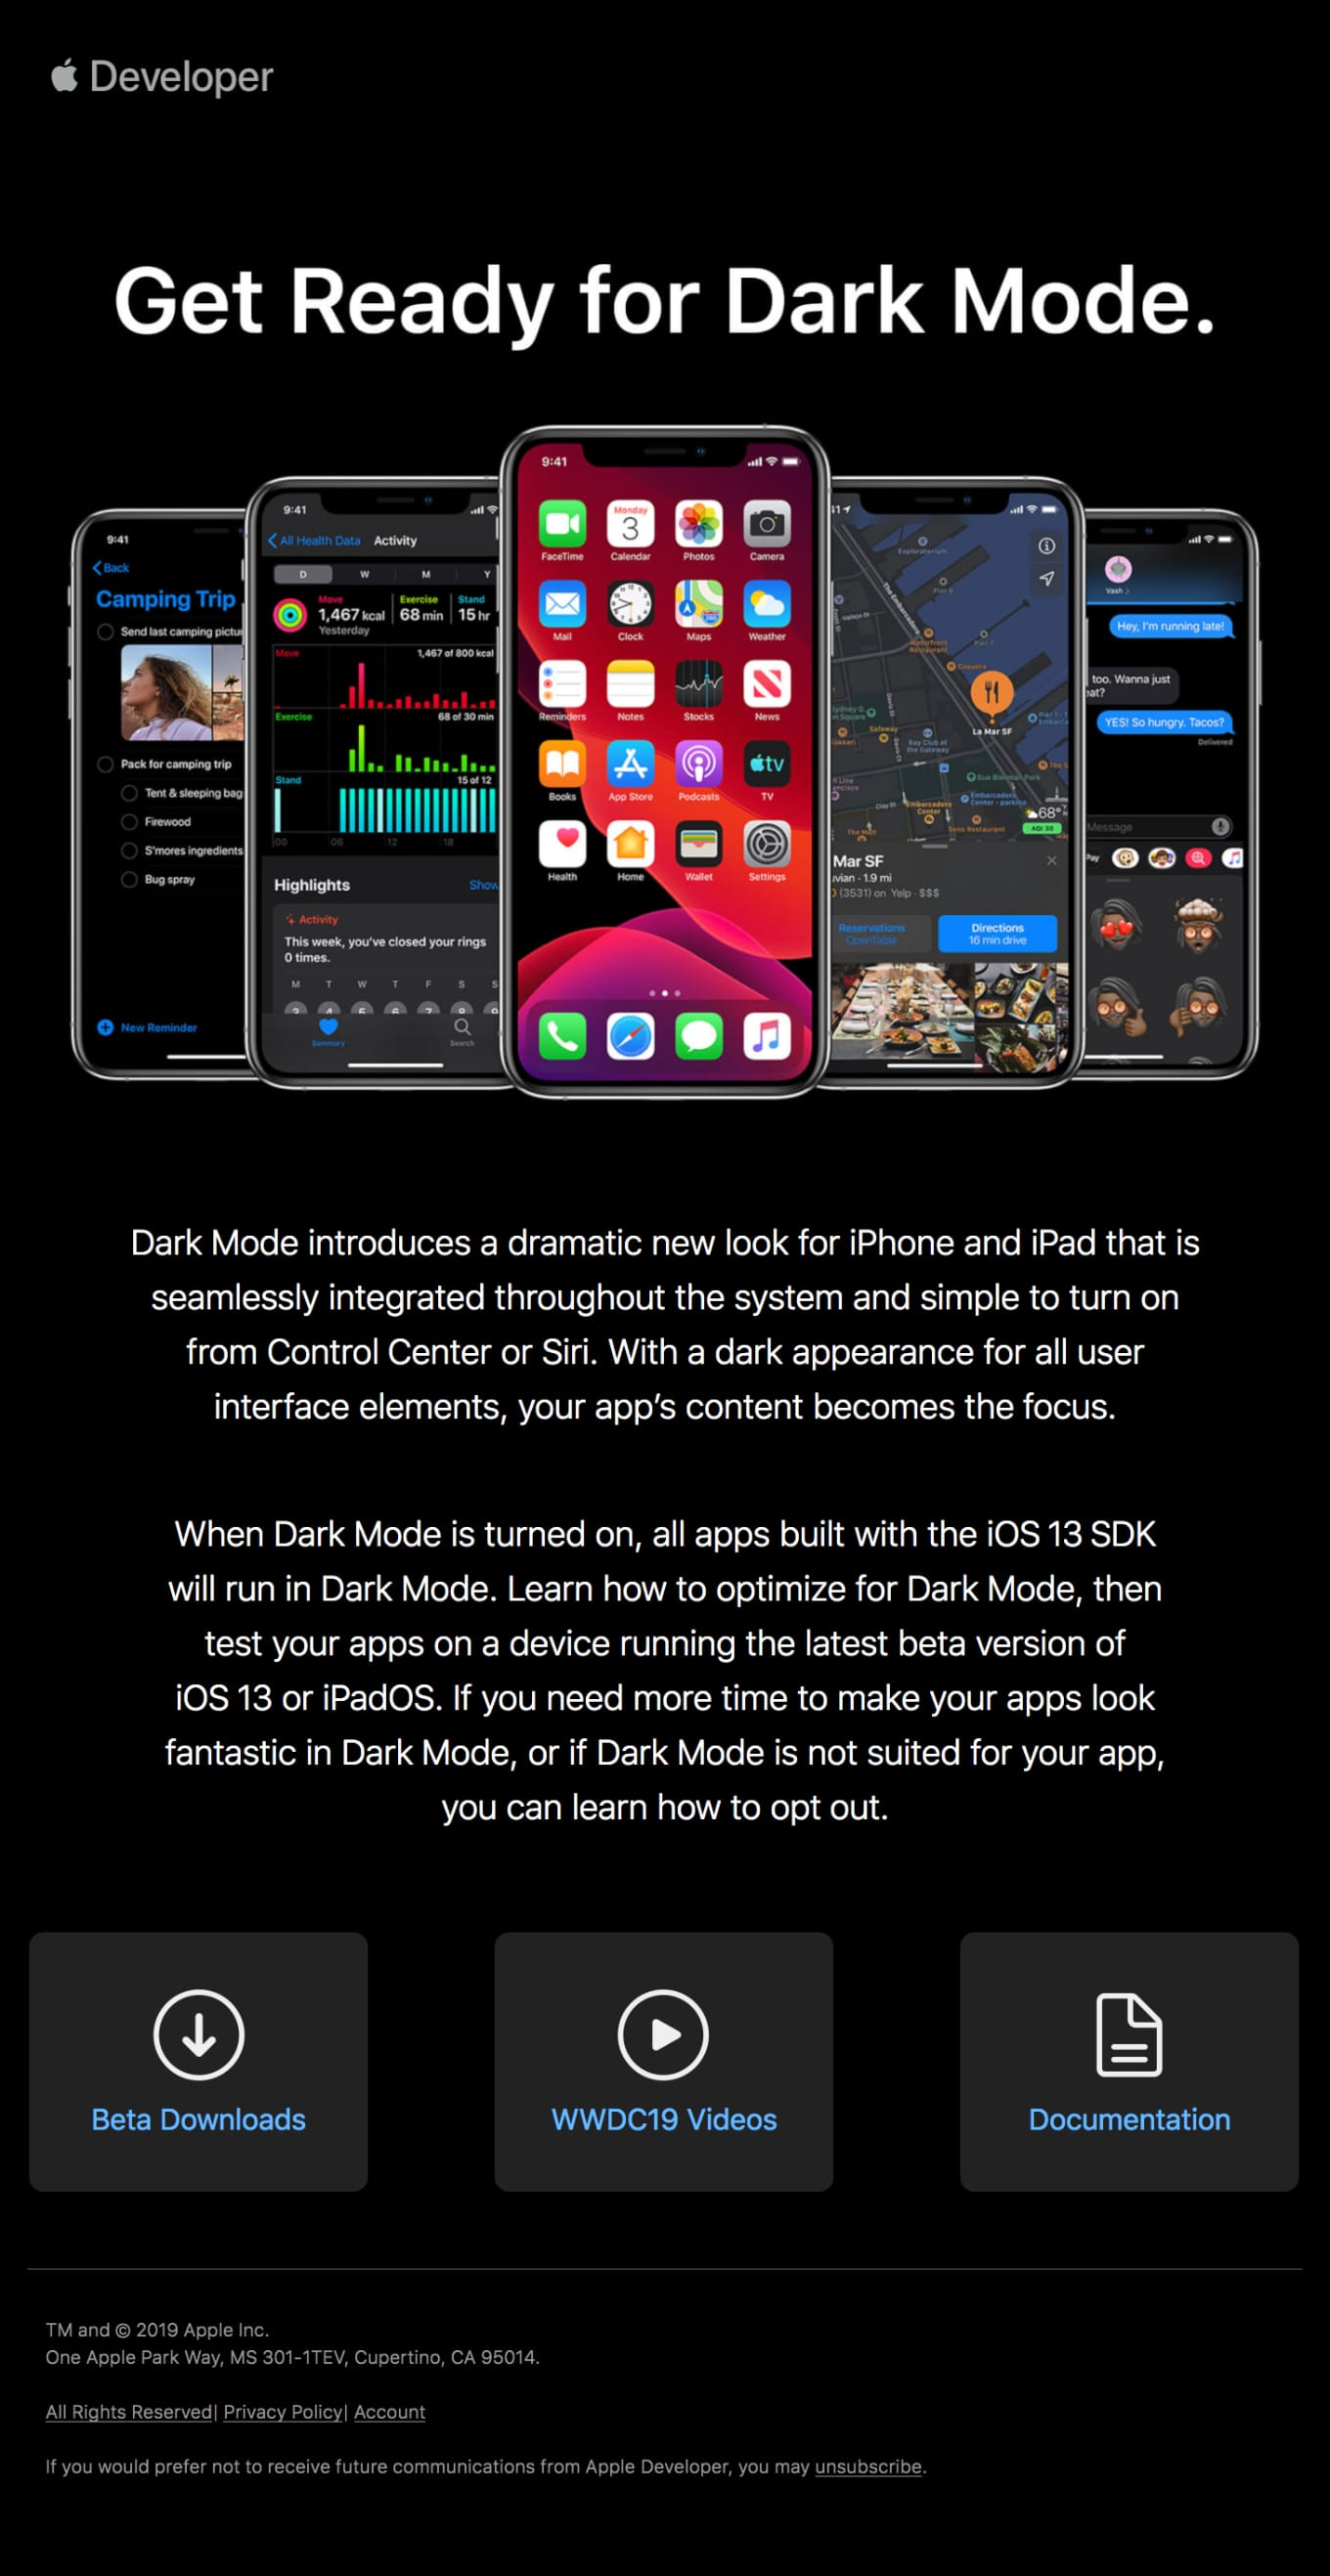 Get Ready for Dark Mode in the iOS 13 SDK Email Screenshot